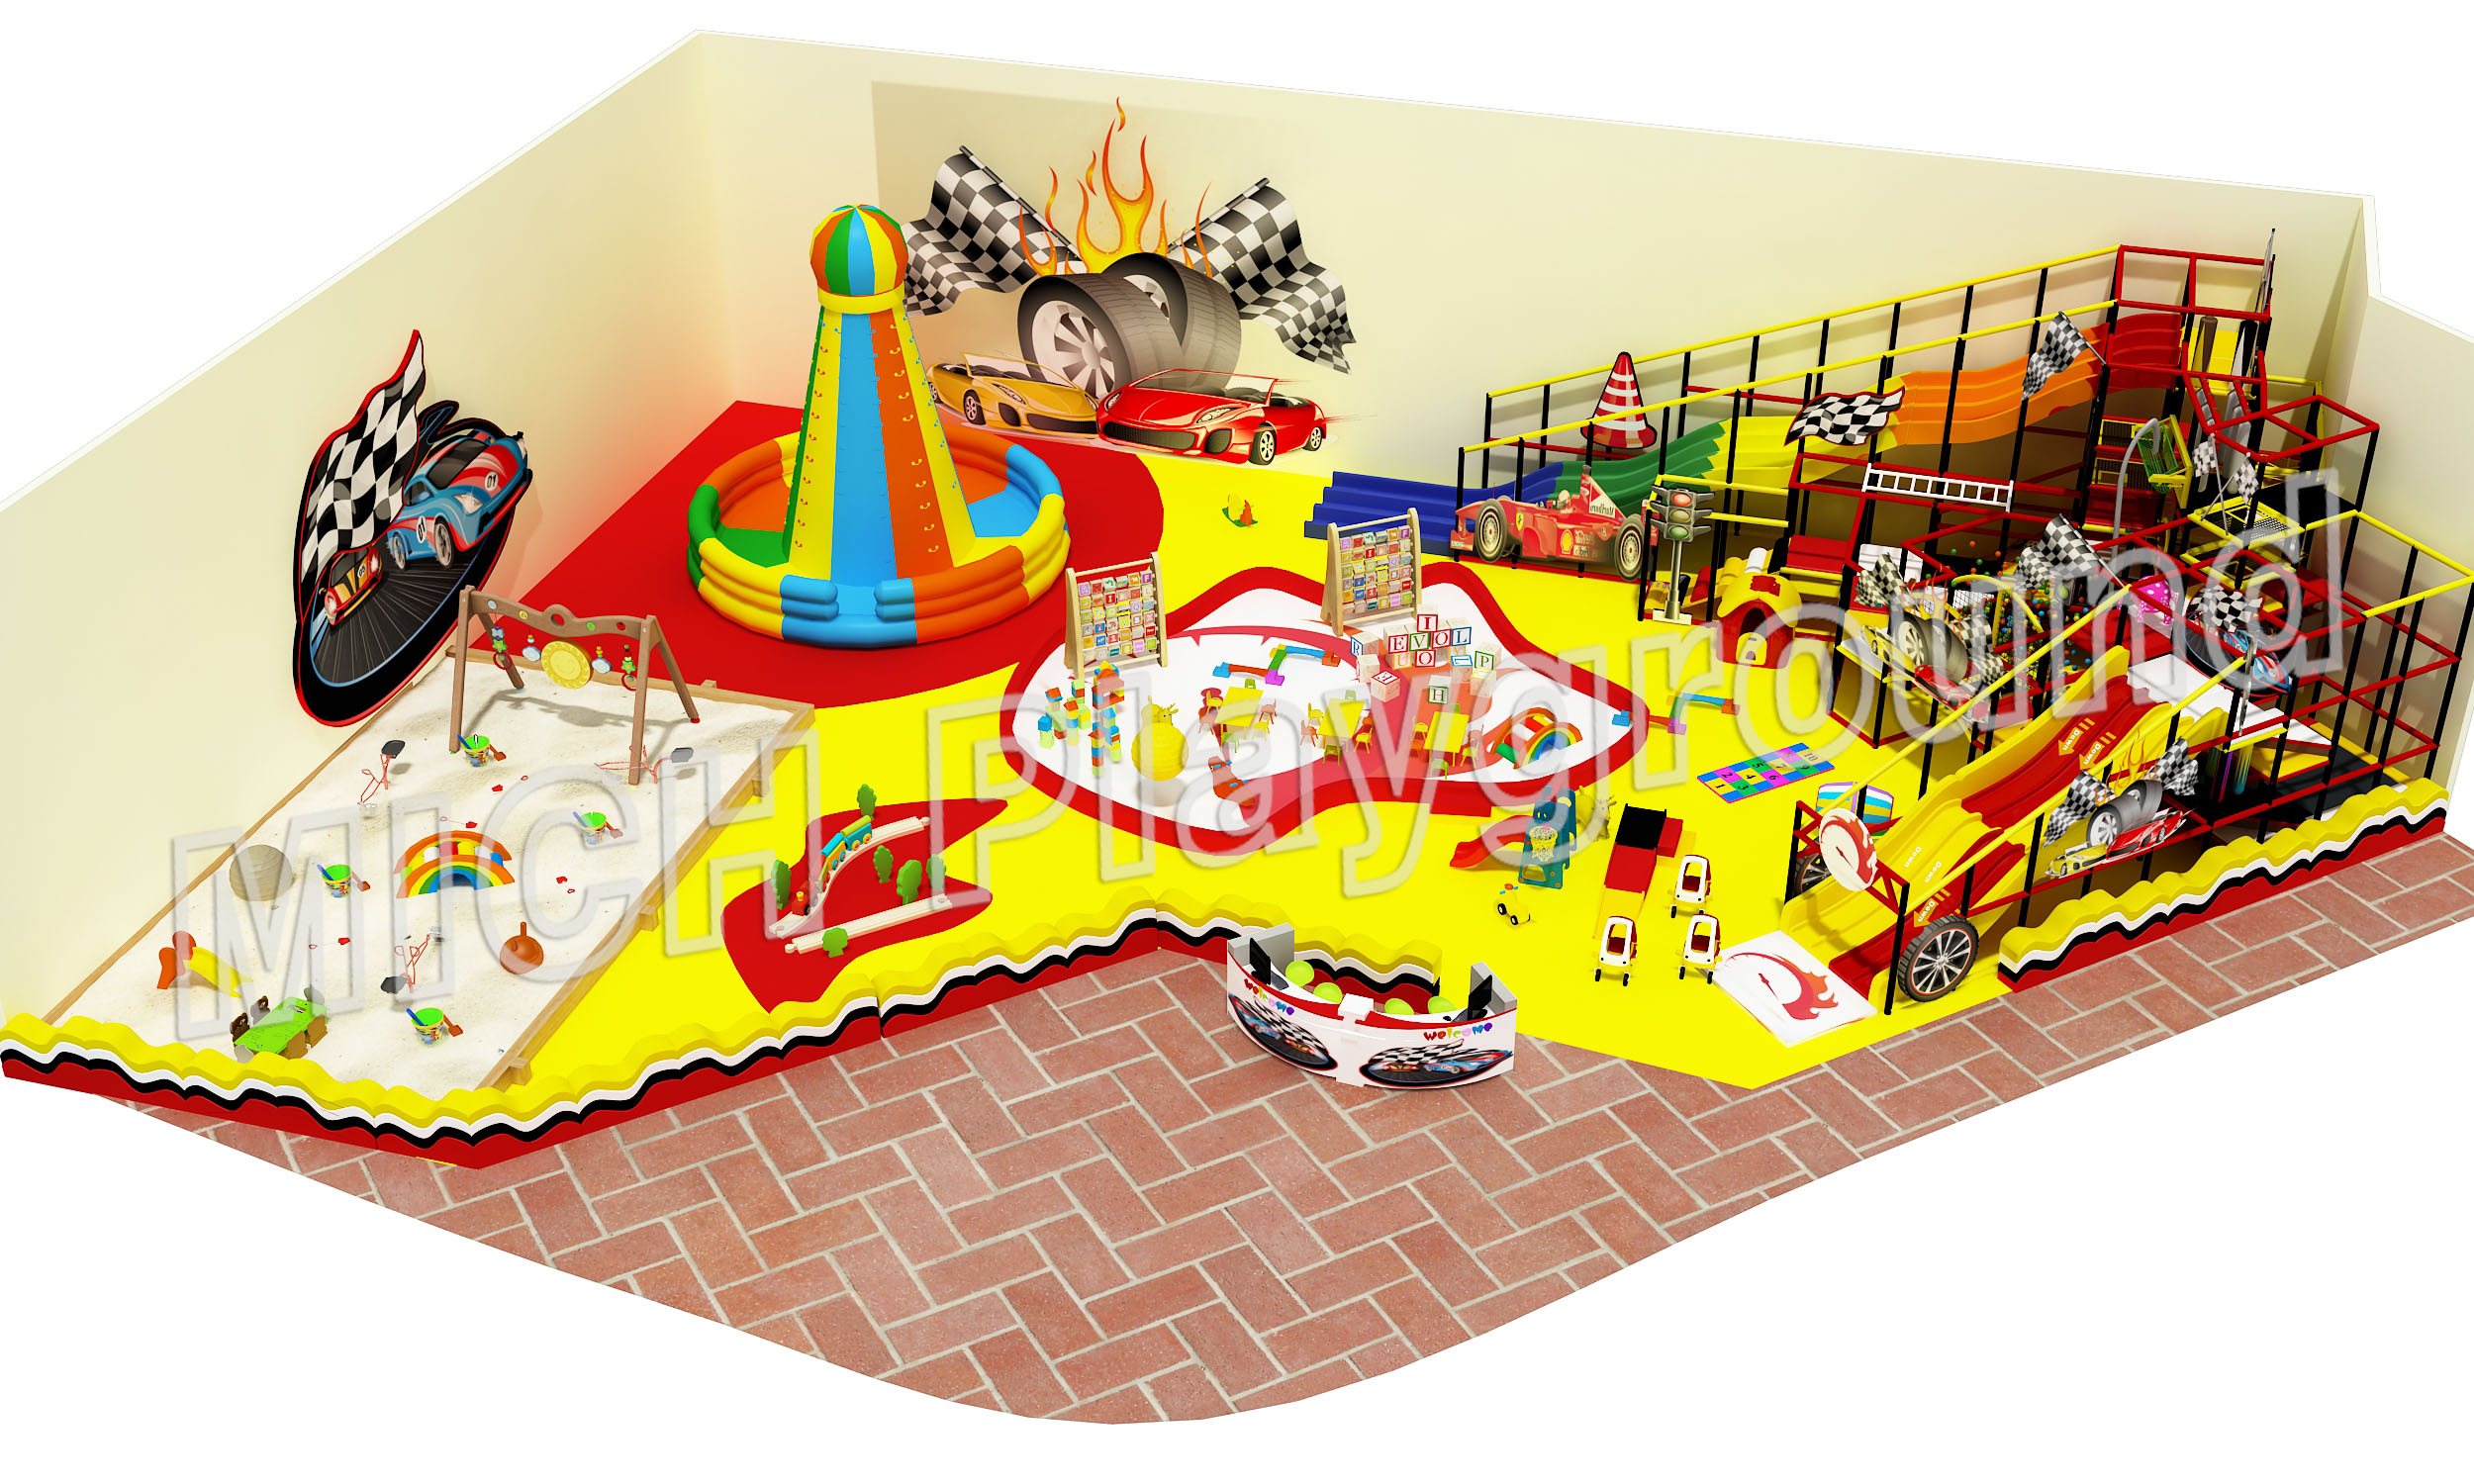 Mich Funny Indoor Amusement Playground 6622A